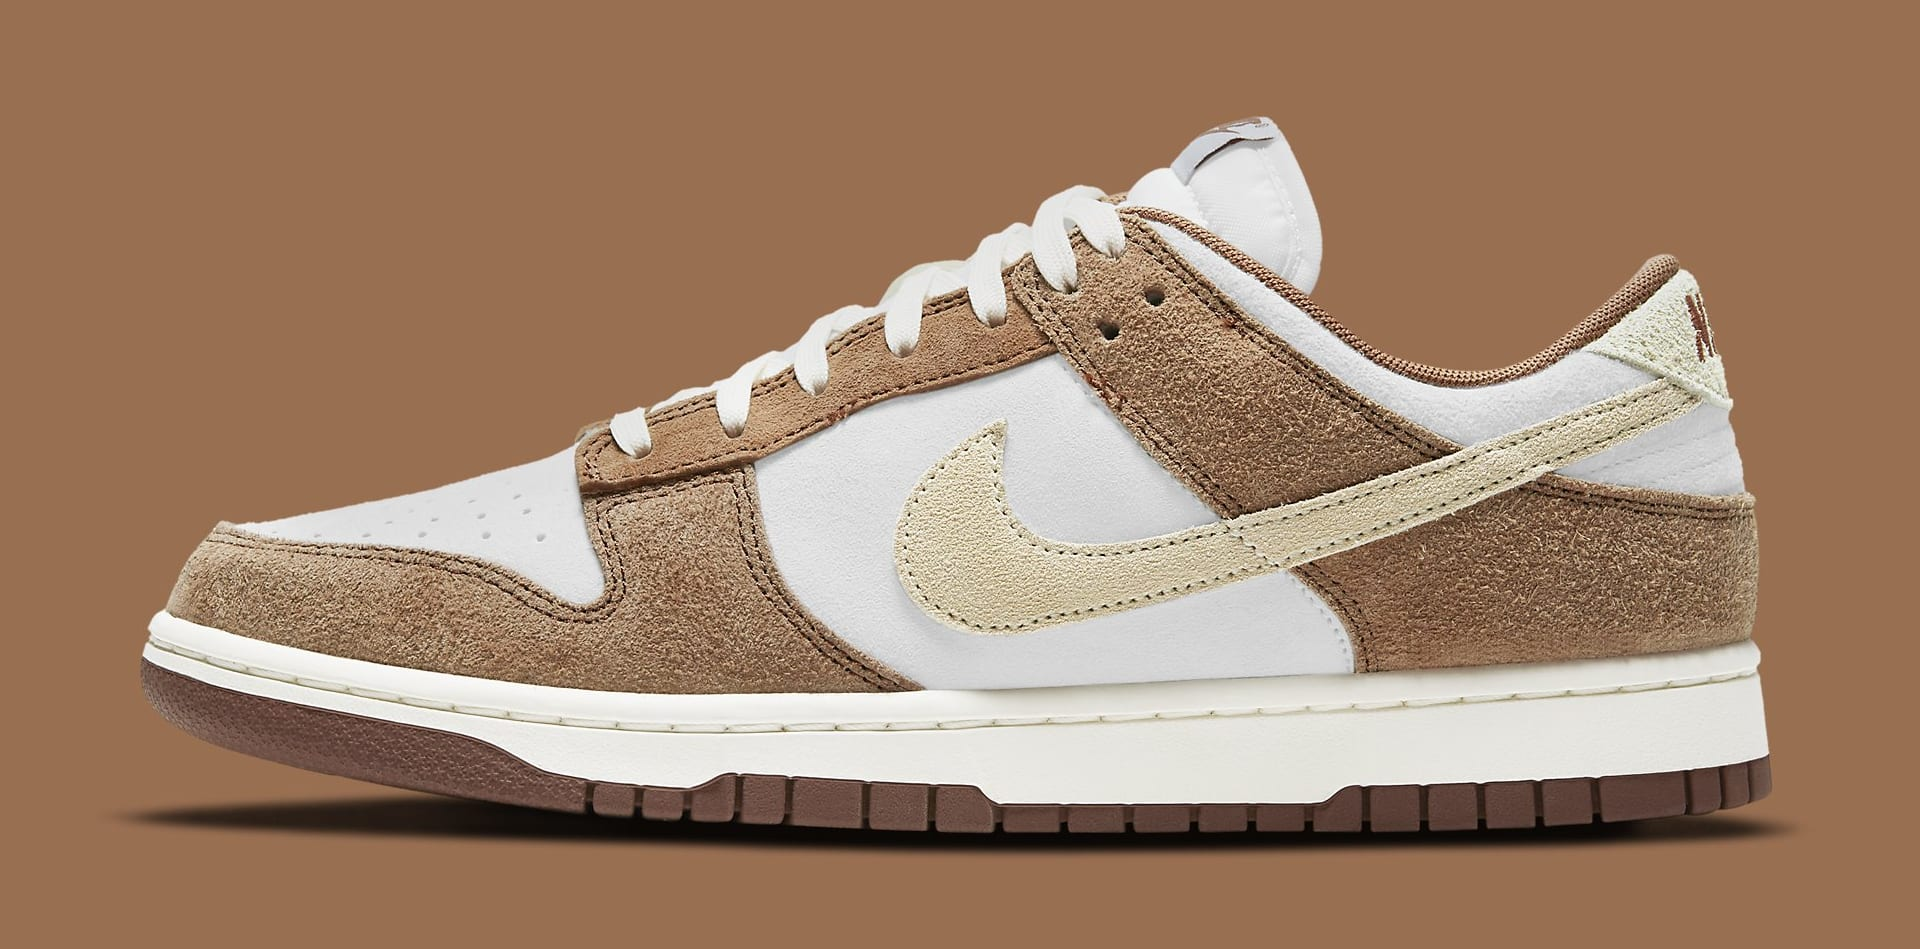 Nike Dunk Low 'Medium Curry' DD1390-100 Lateral